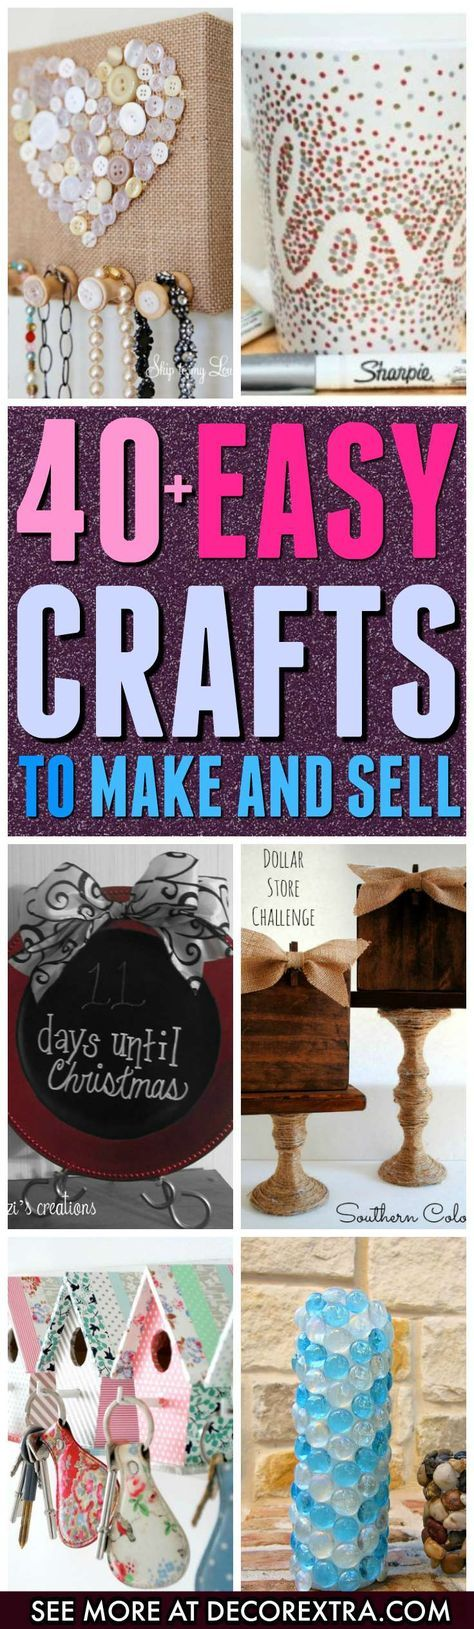 25 unique fundraiser crafts ideas on pinterest diy for Craft ideas for women